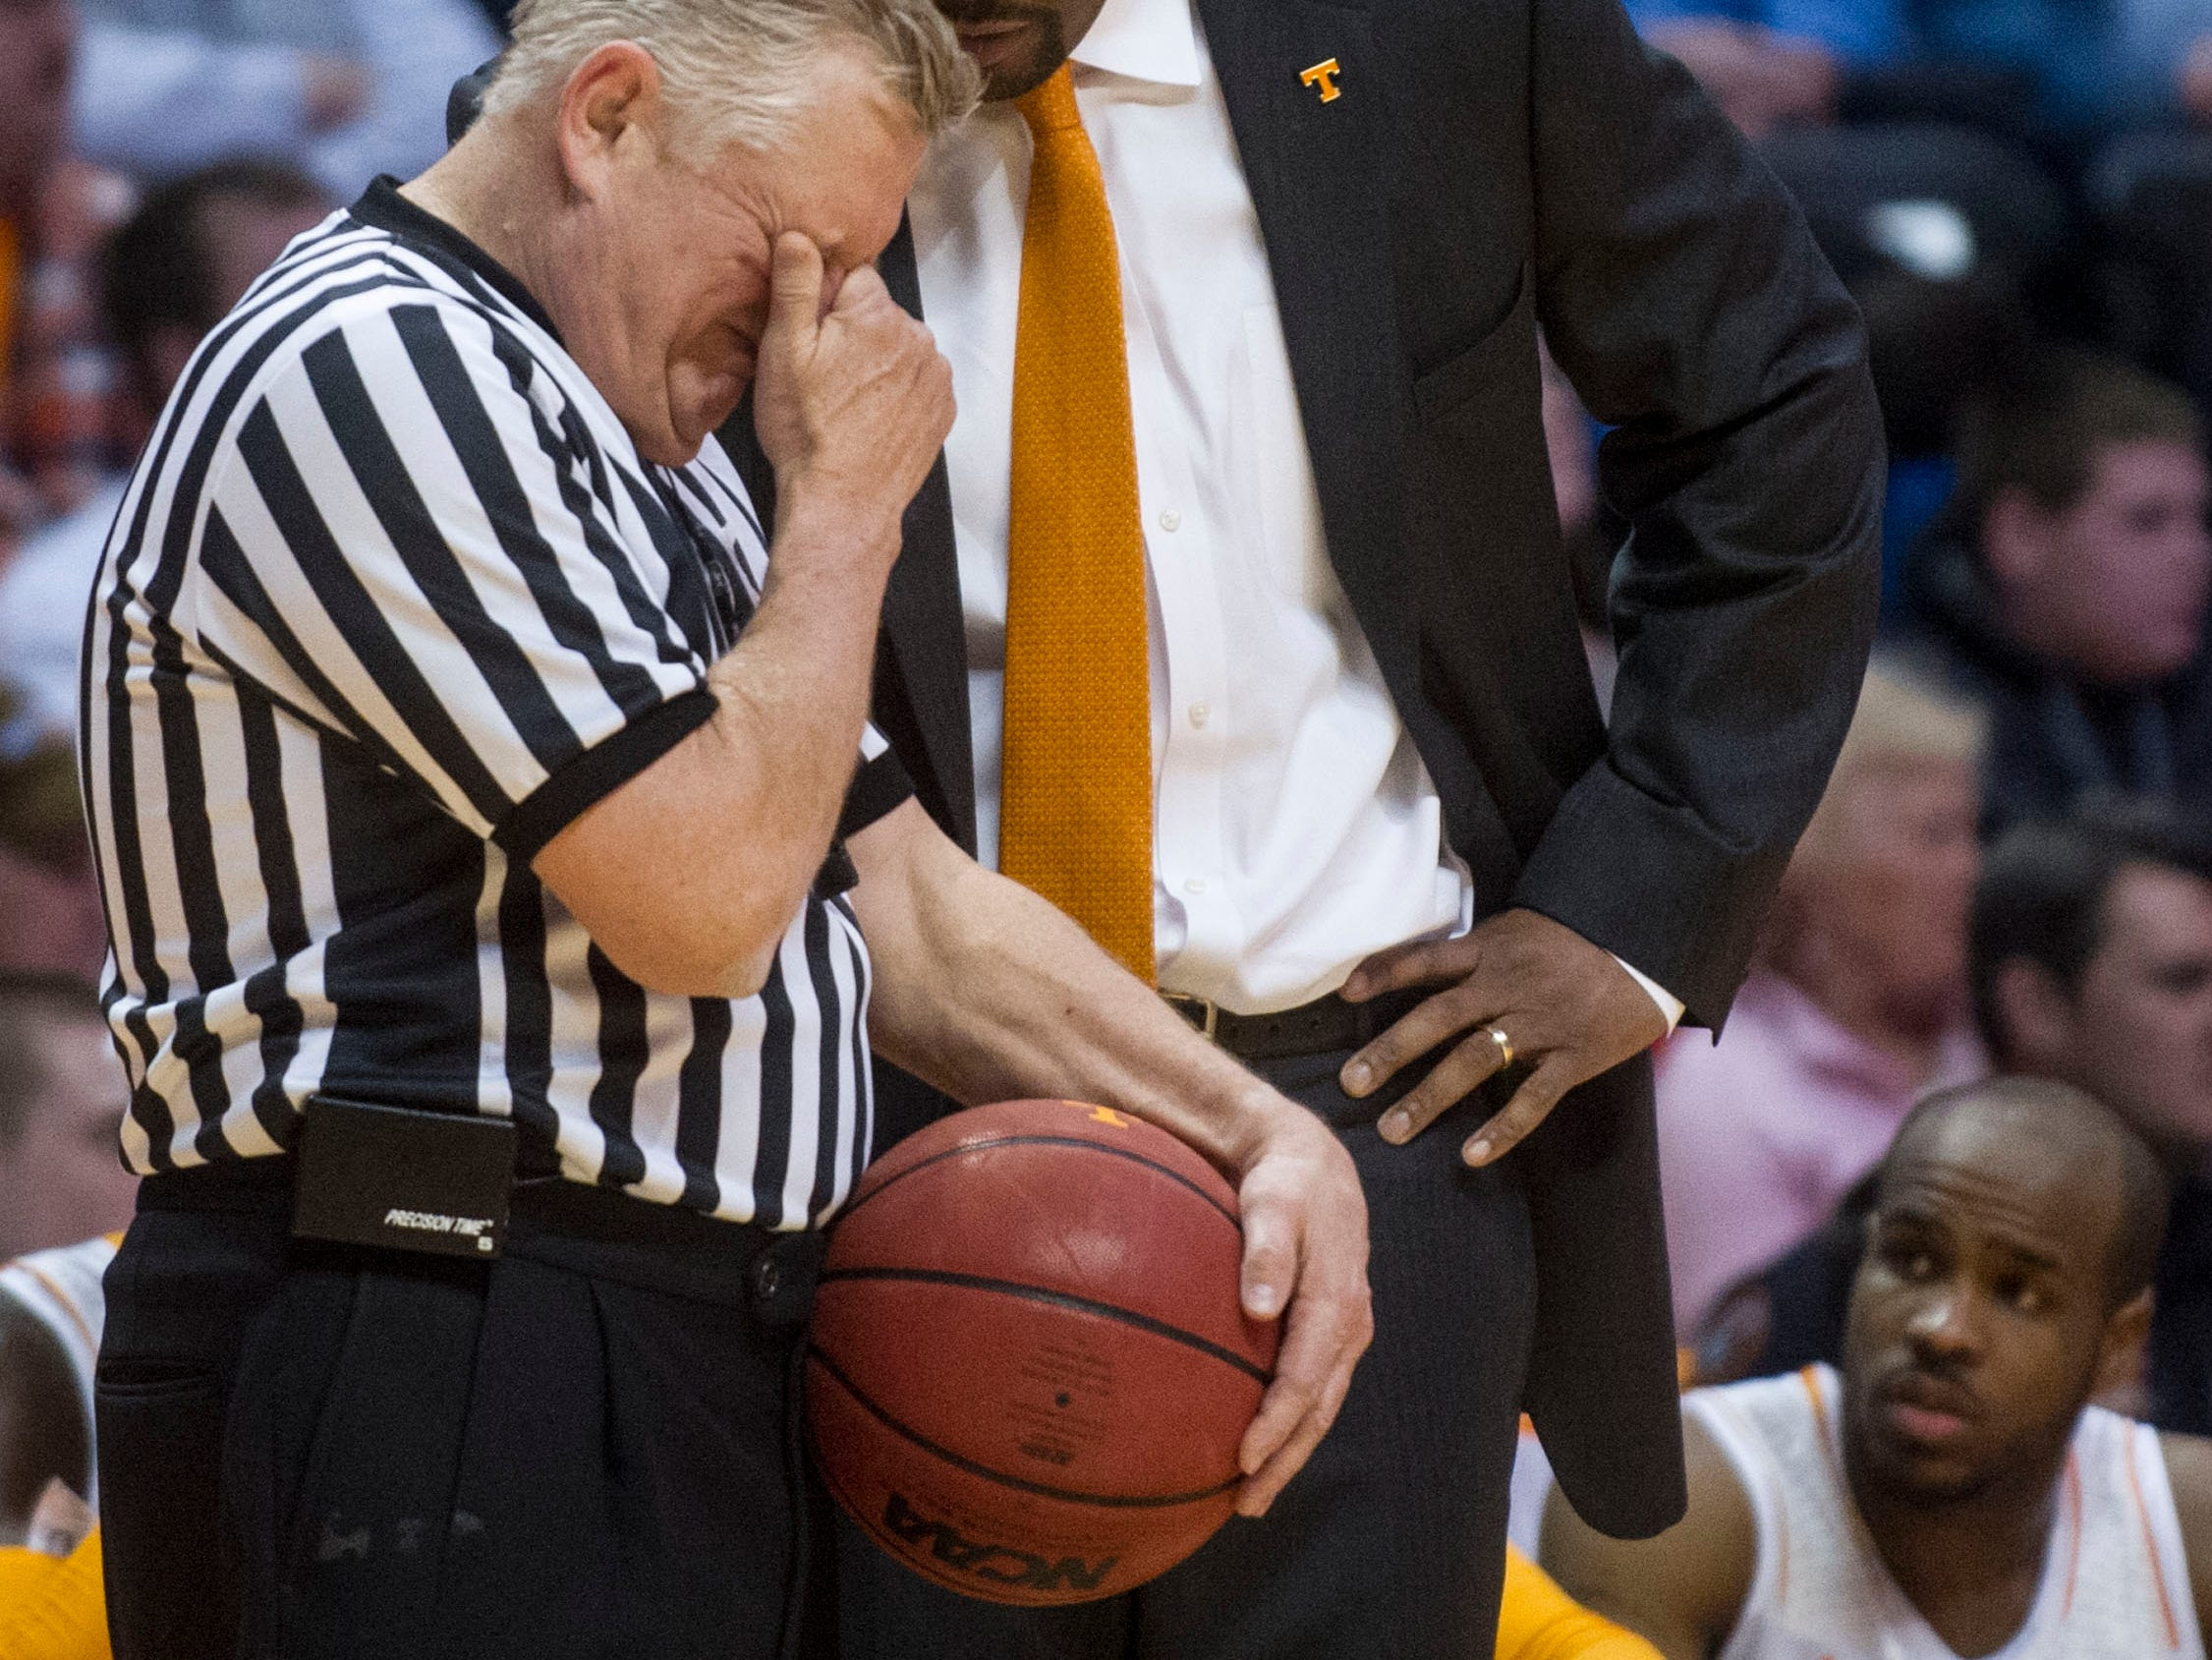 Tennessee head coach Cuonzo Martin speaks with an official during the game against LSU at Thompson-Boling Arena on Tuesday, February 19, 2013. Tennessee wins against LSU, 82-72.